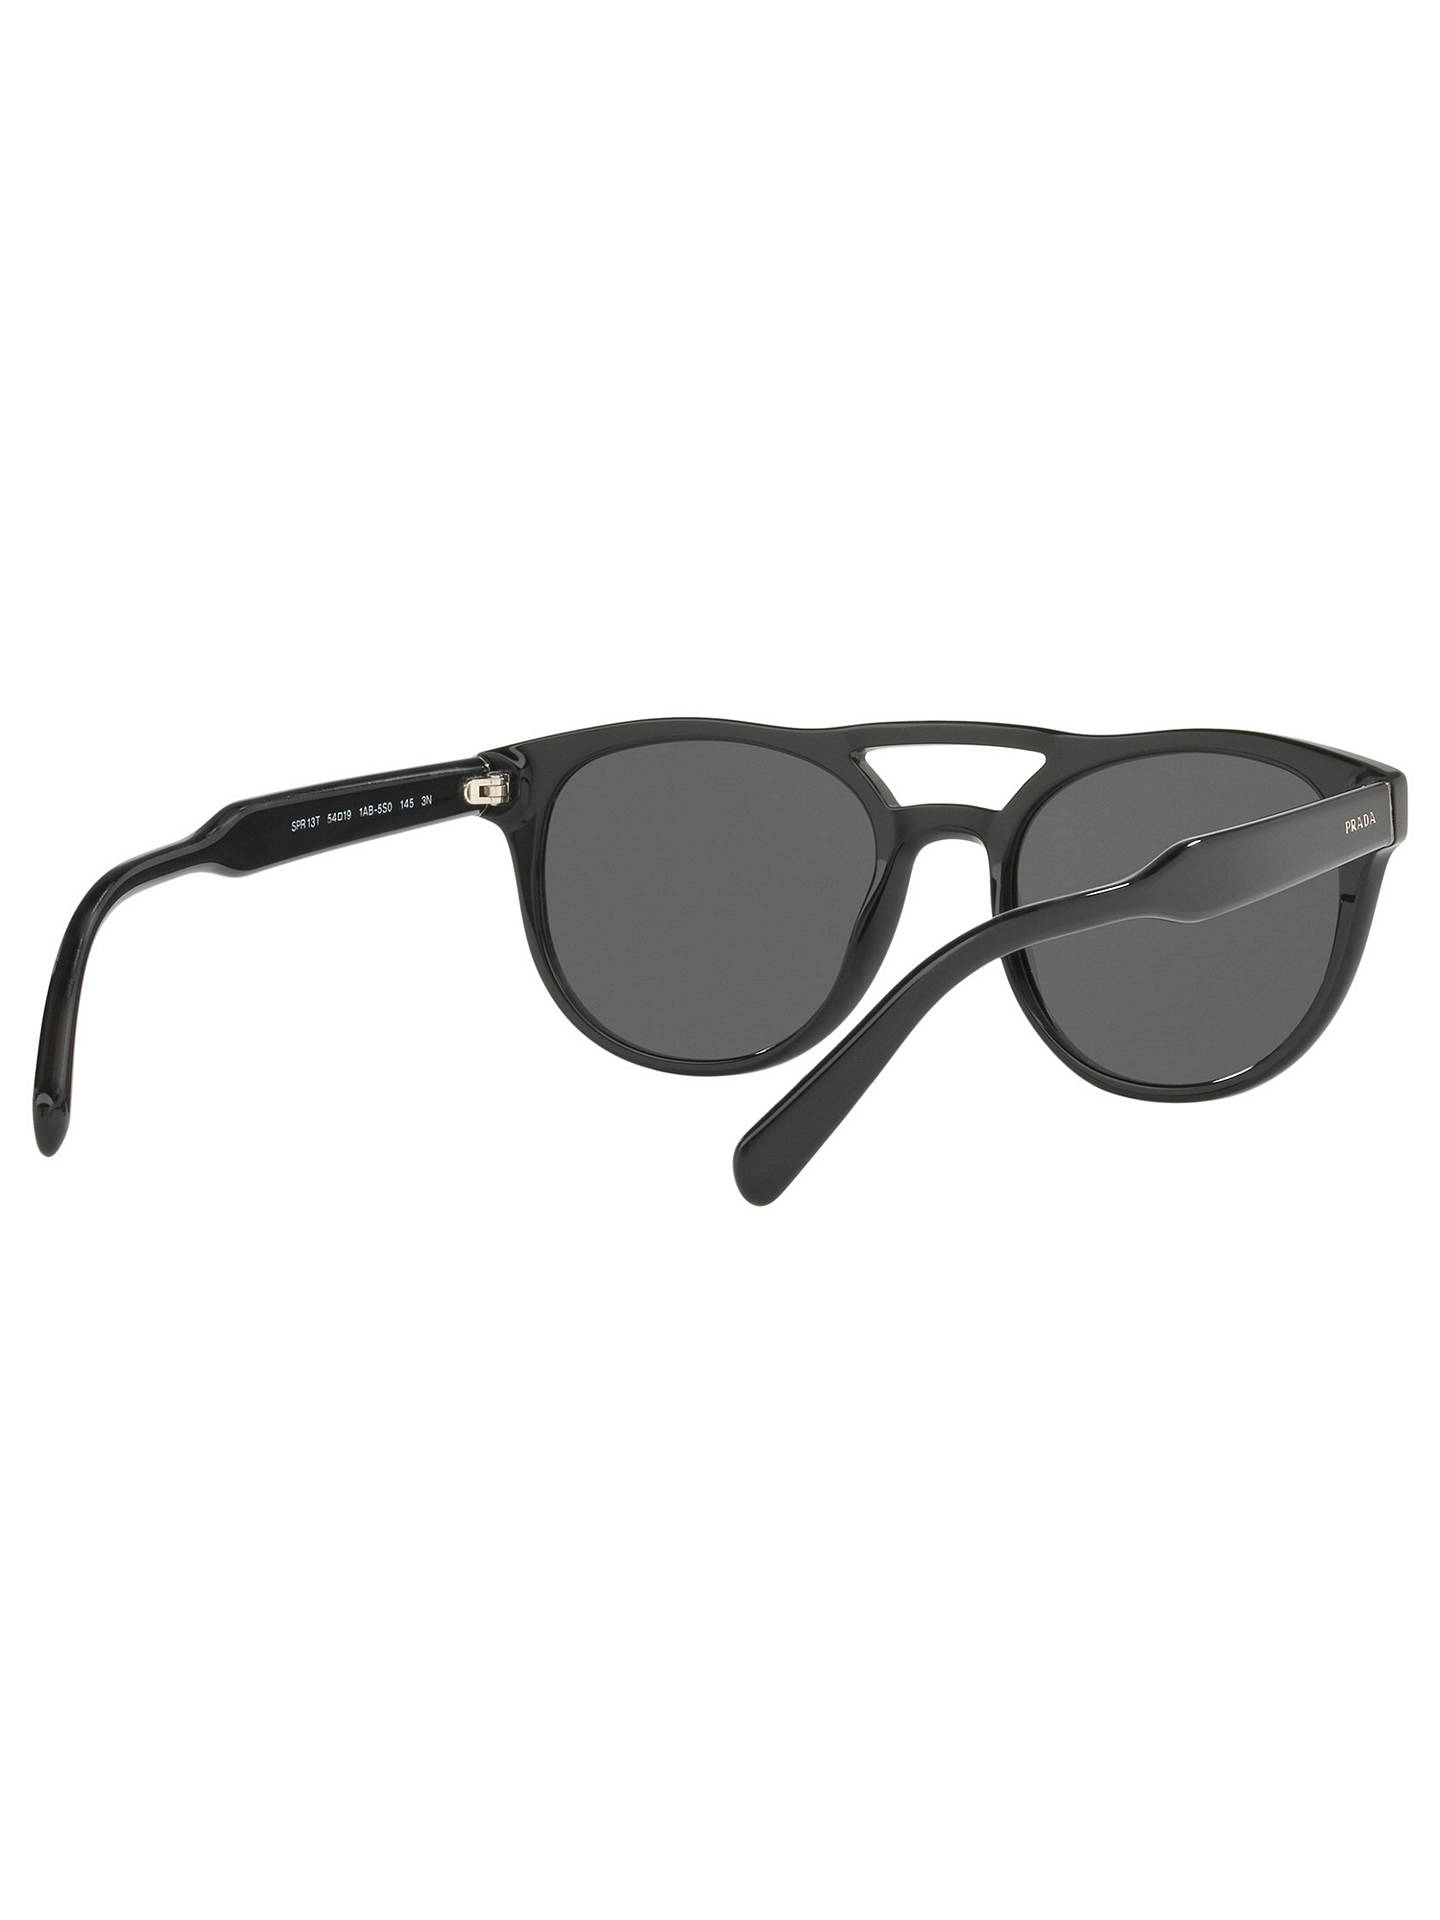 Buy Prada PR 13TS Double Bridge Oval Sunglasses, Matte Black/Grey Online at johnlewis.com